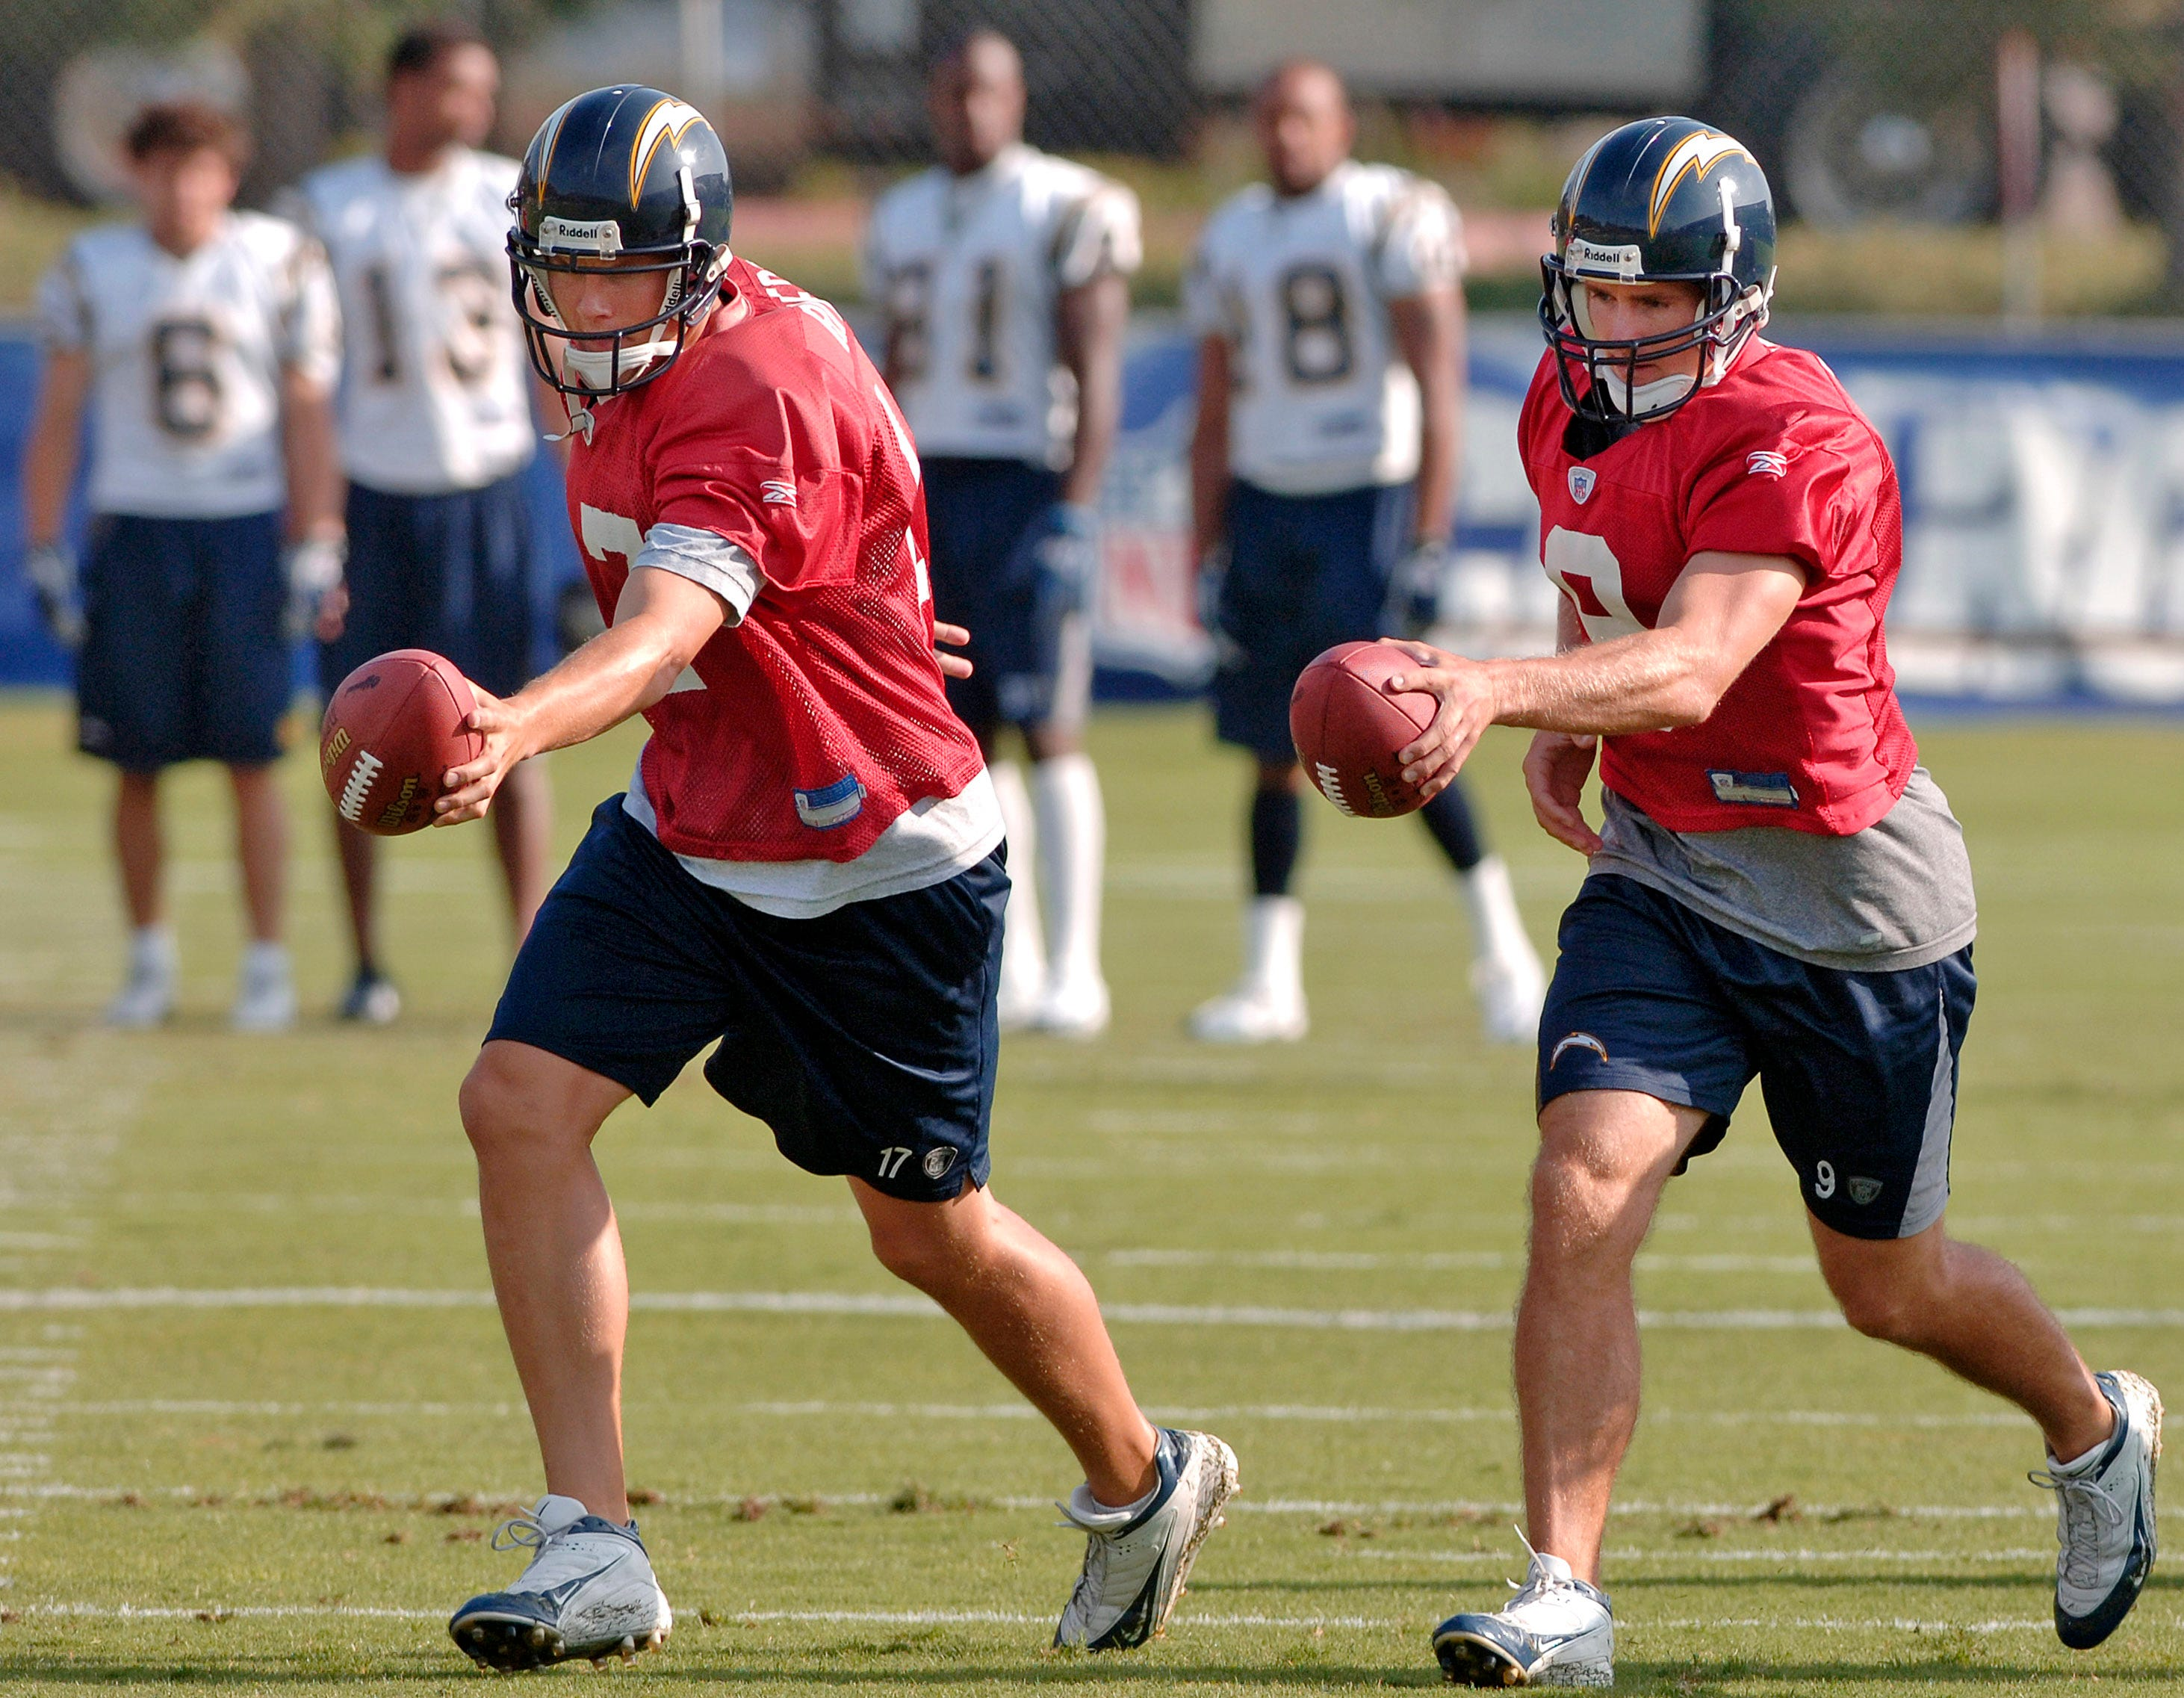 Philip Rivers, Drew Brees look back fondly on partnership